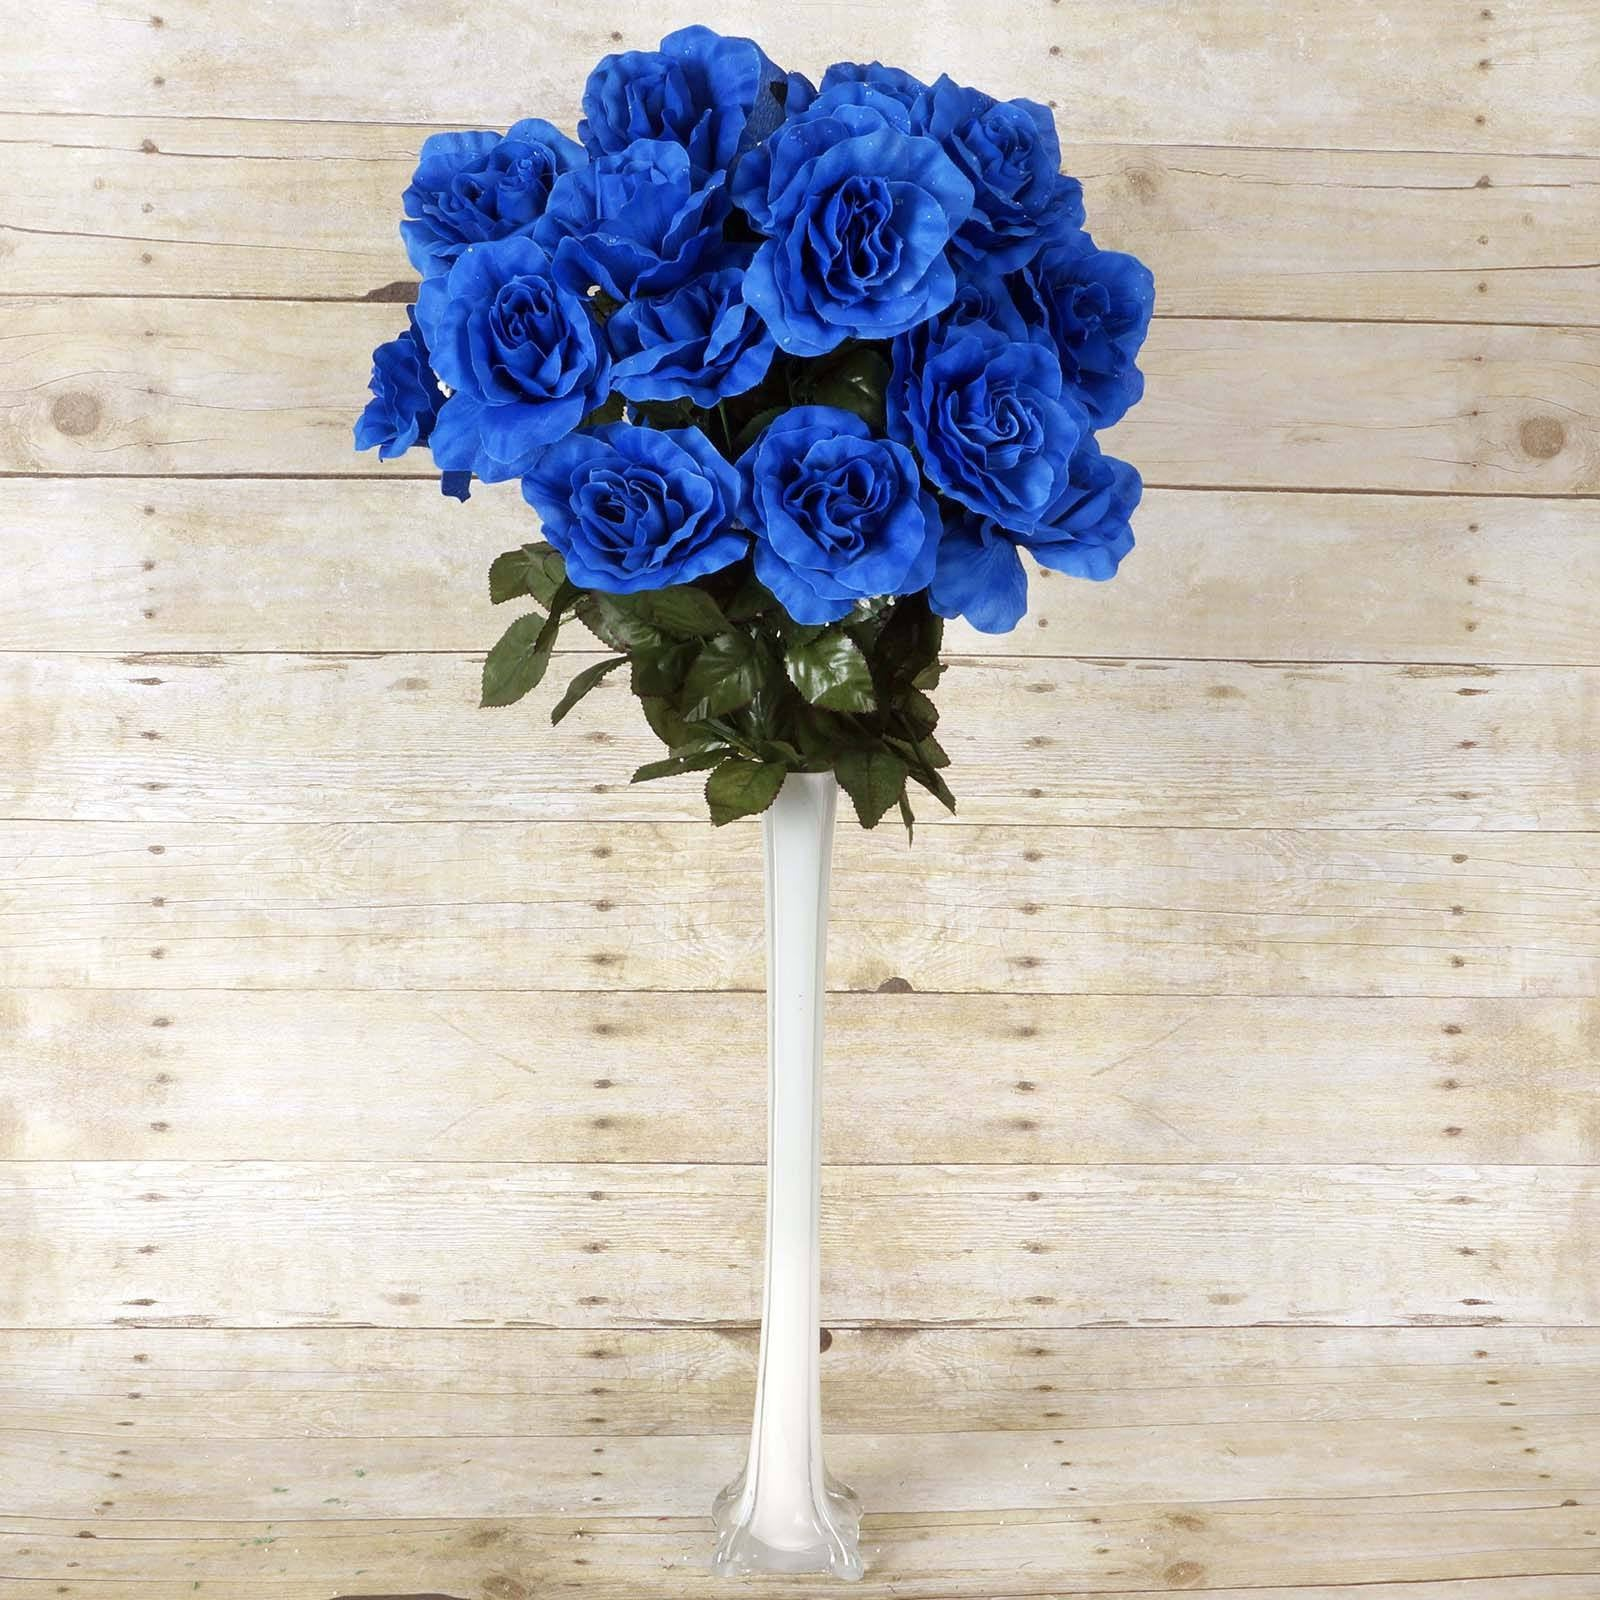 96 Artificial Royal Blue Giant Silk Open Roses Wedding Bridal ...